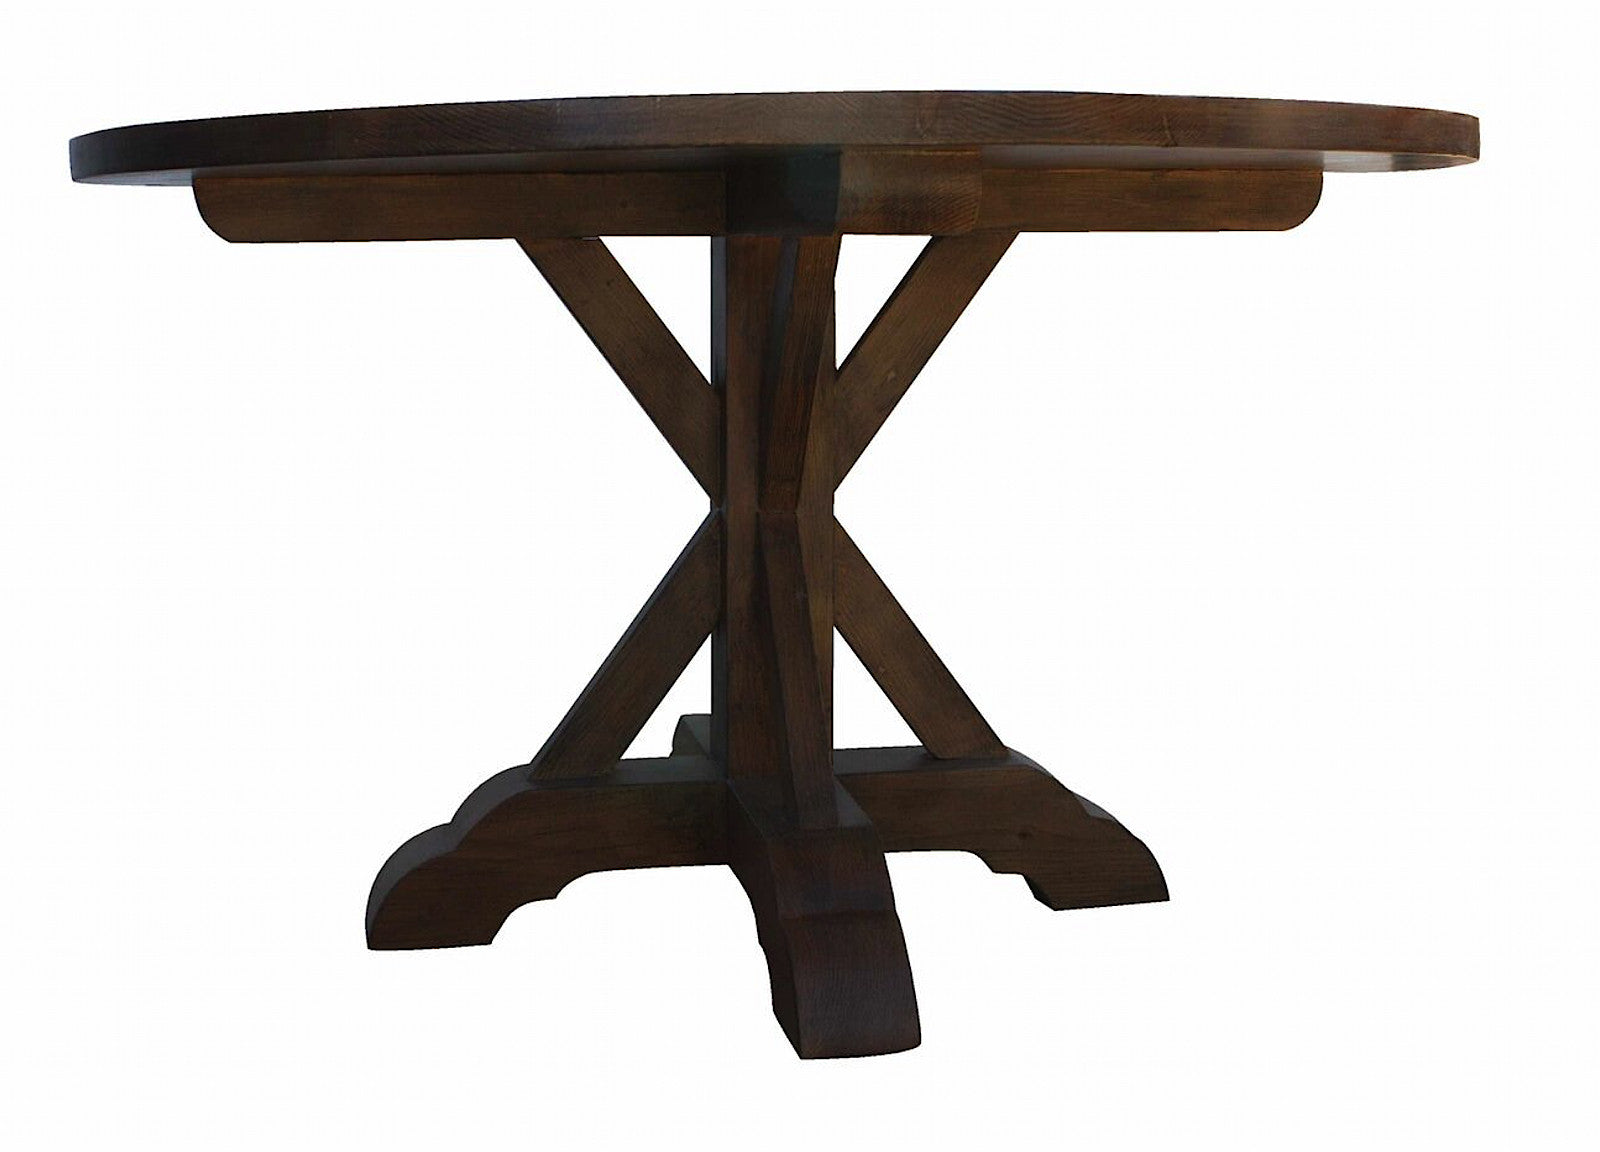 Furniture made from reclaimed douglas fir and reclaimed barn wood ...